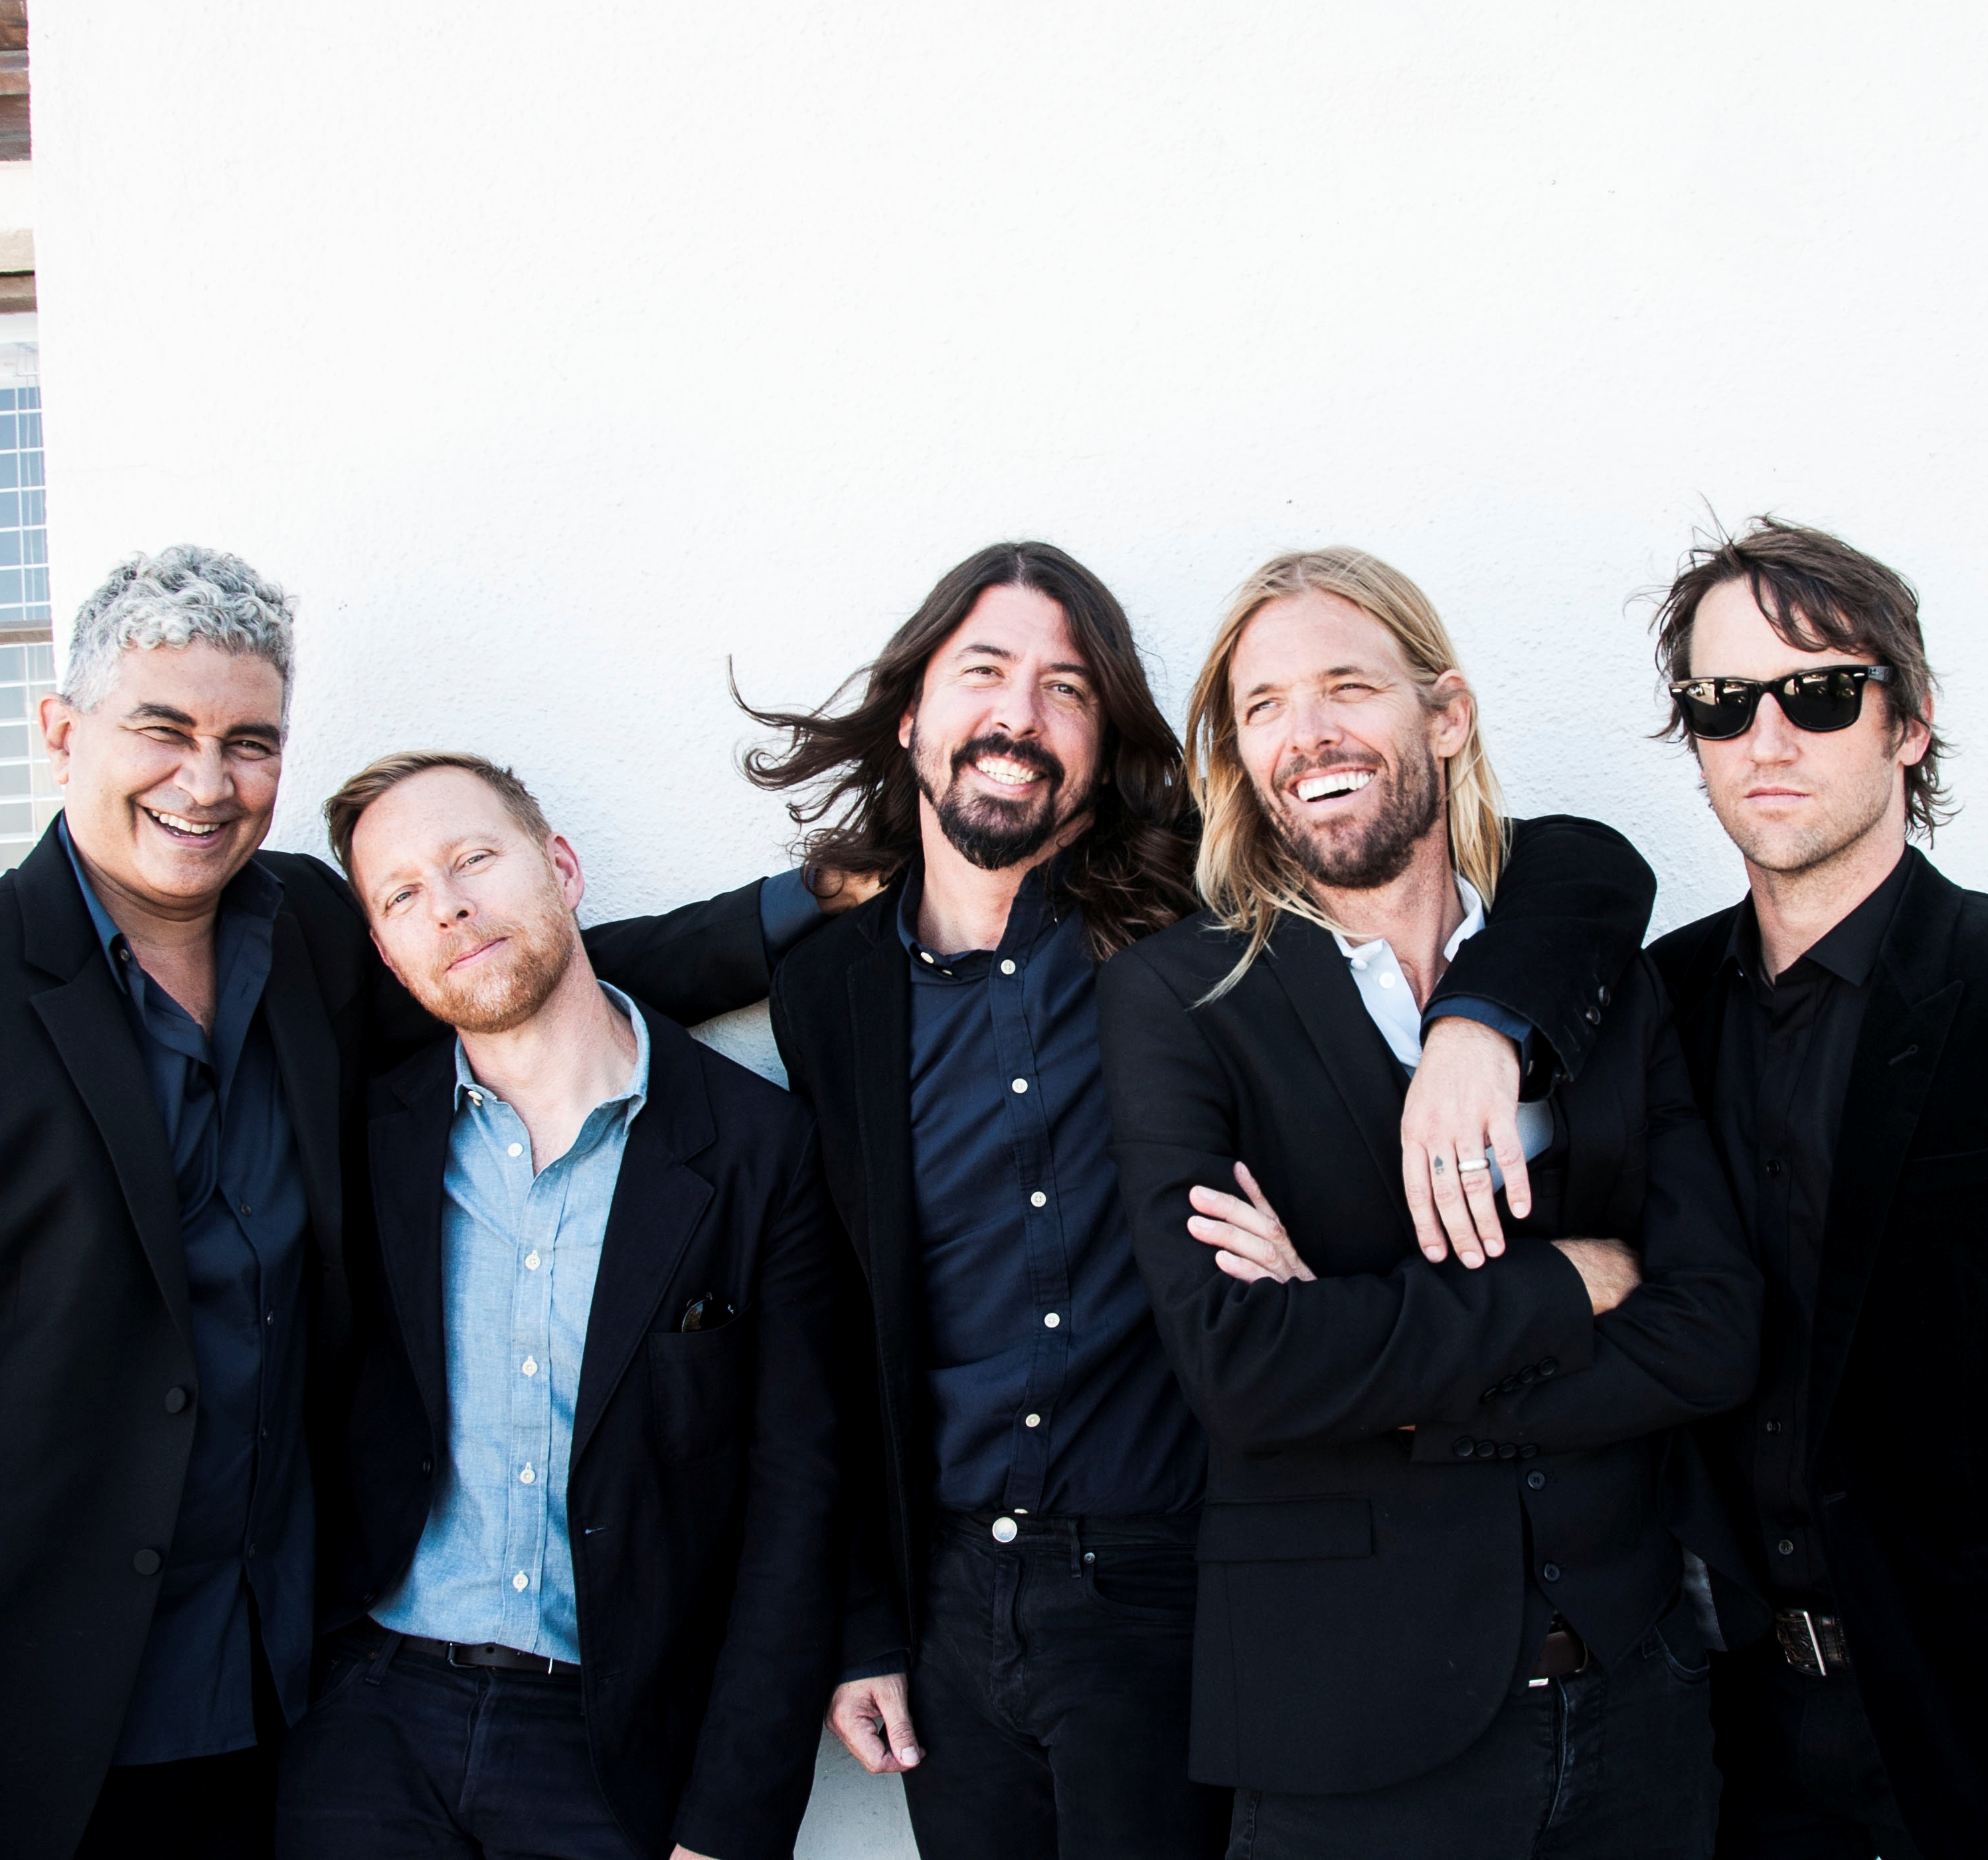 Foo Fighters photo by Ringo Starr stand 0093-2-